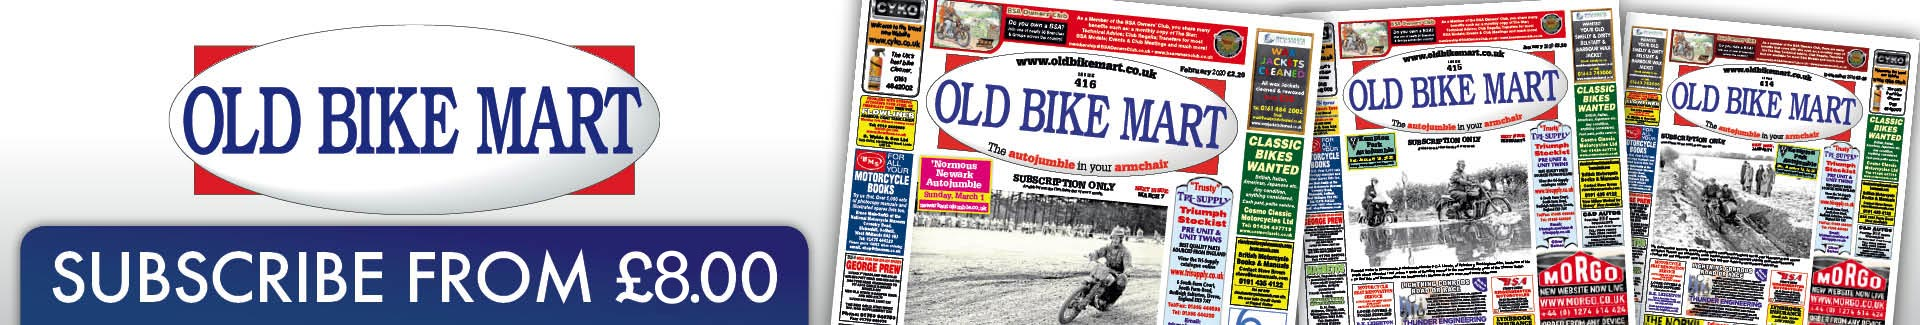 Old Bike Mart - Subscription